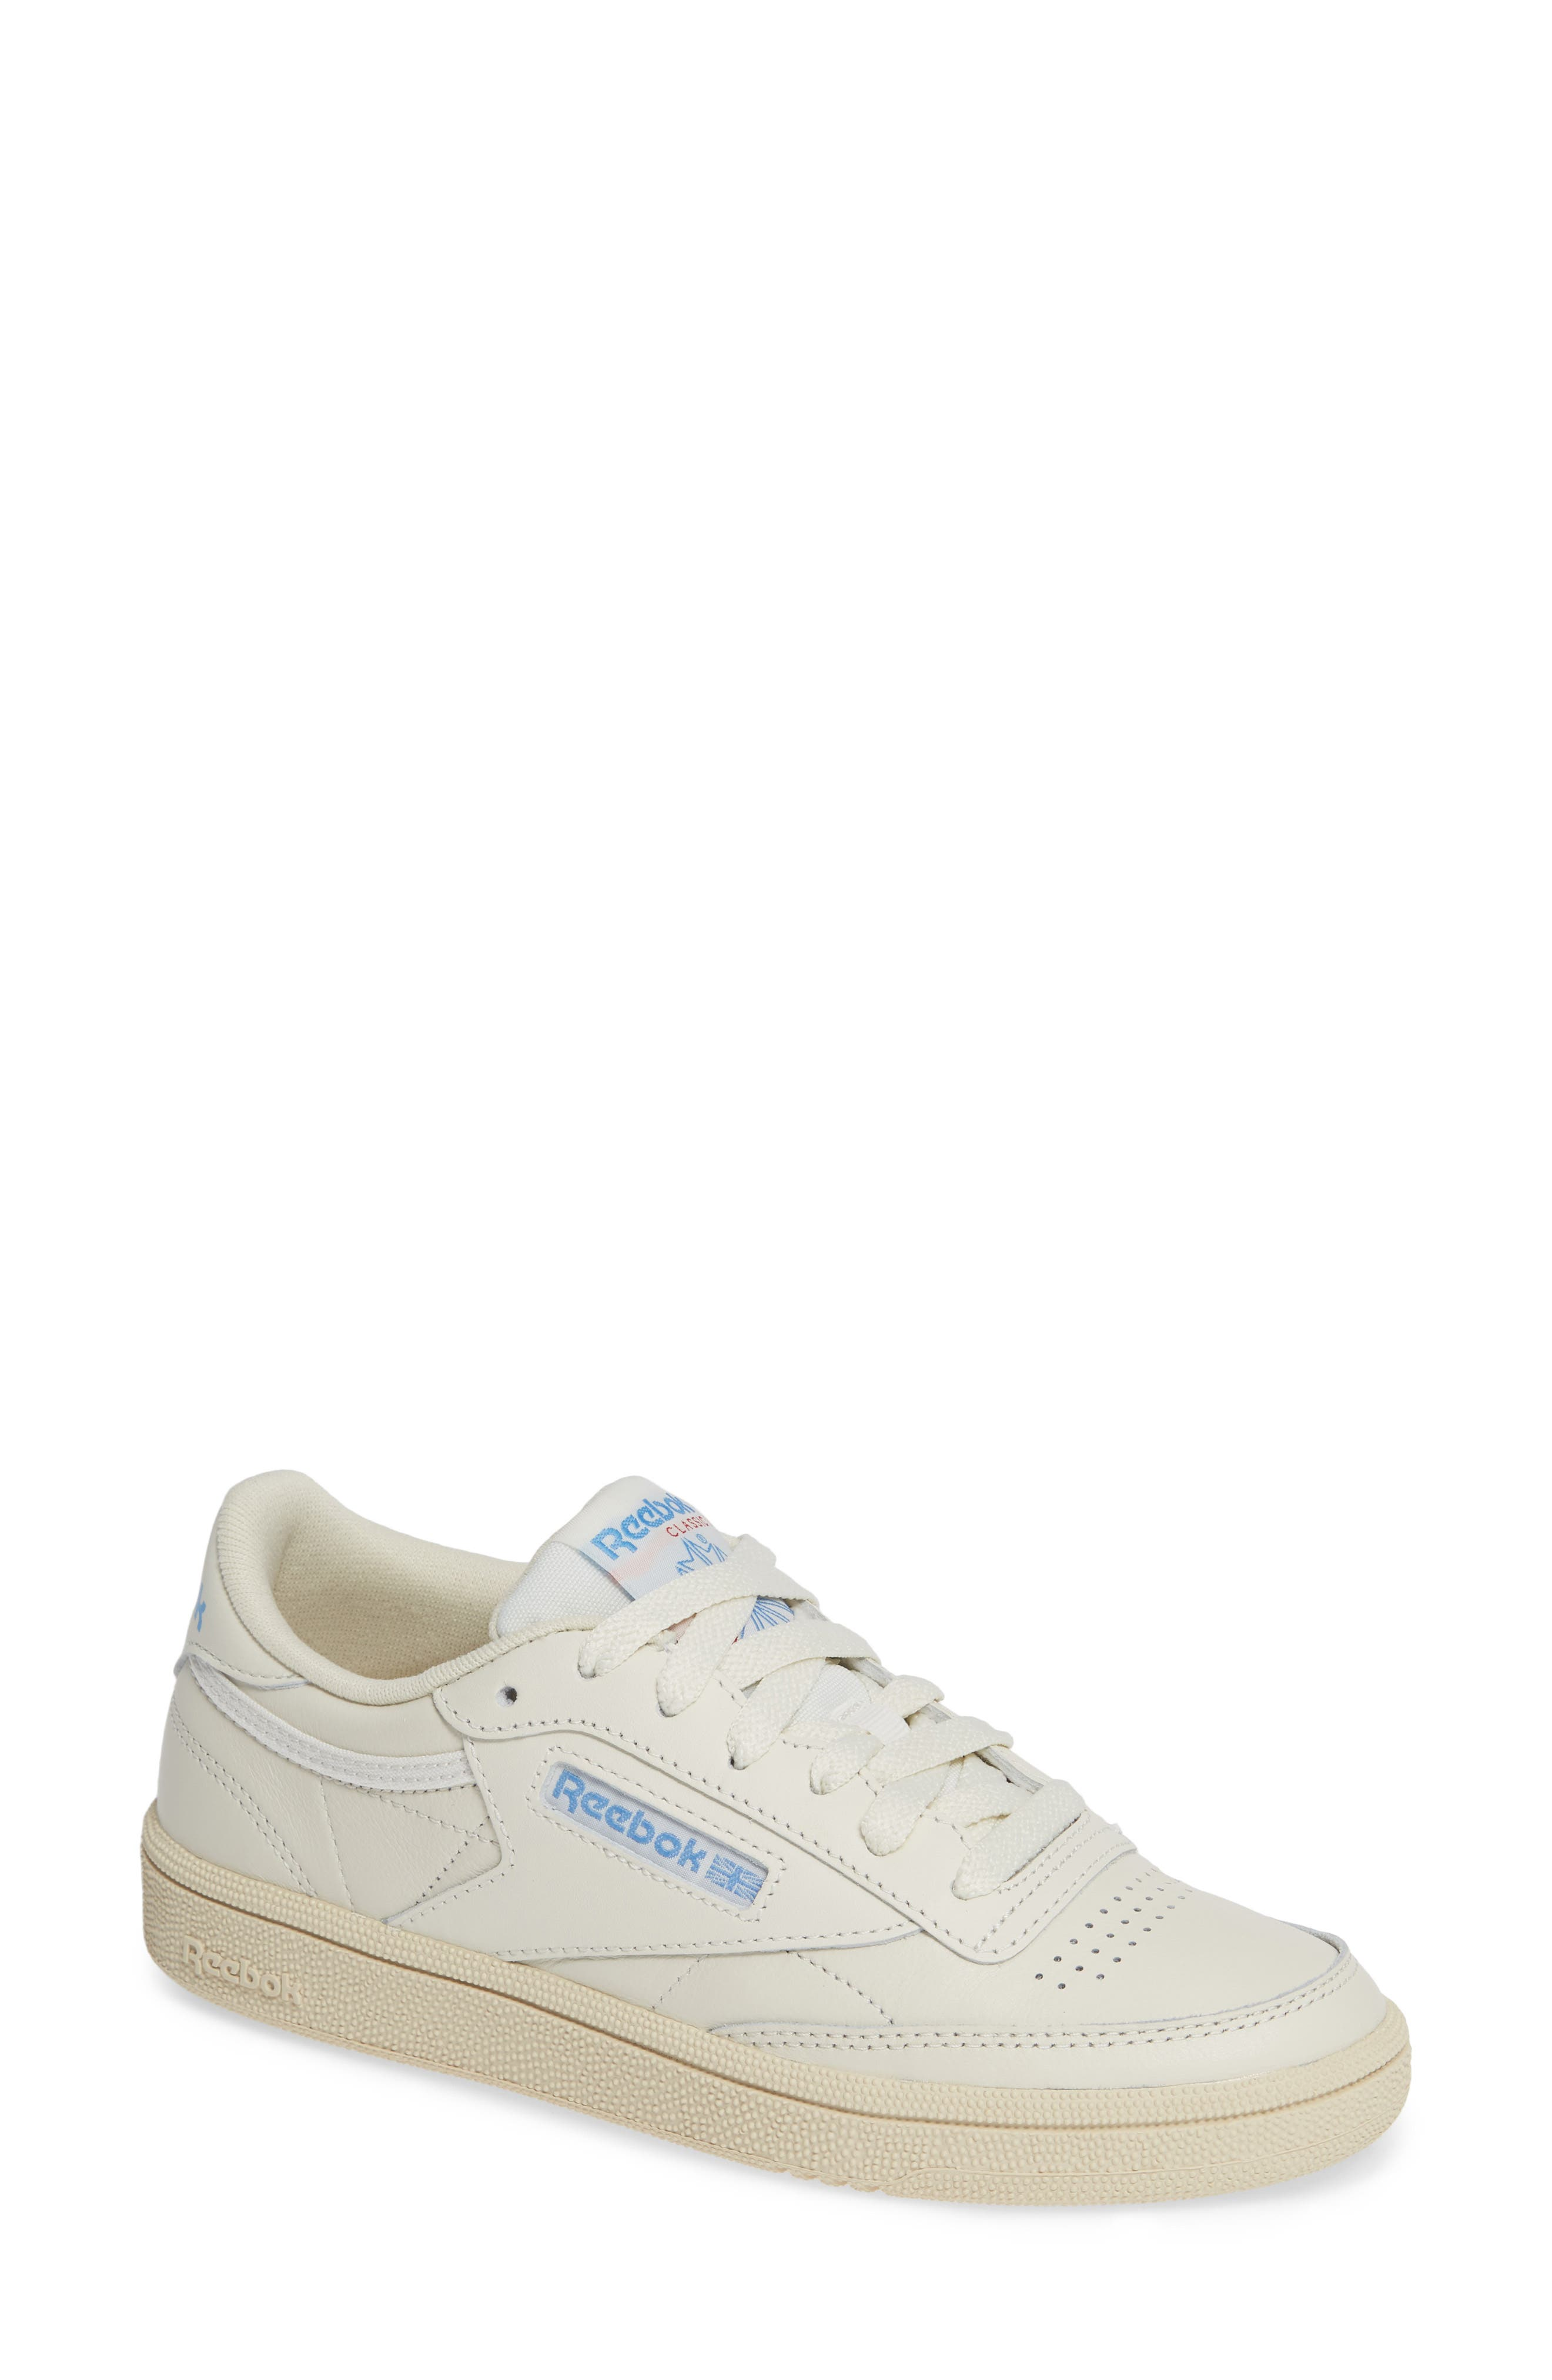 Club C 85 Sneaker,                         Main,                         color, CHALK/ WHITE/ BLUE/ RED